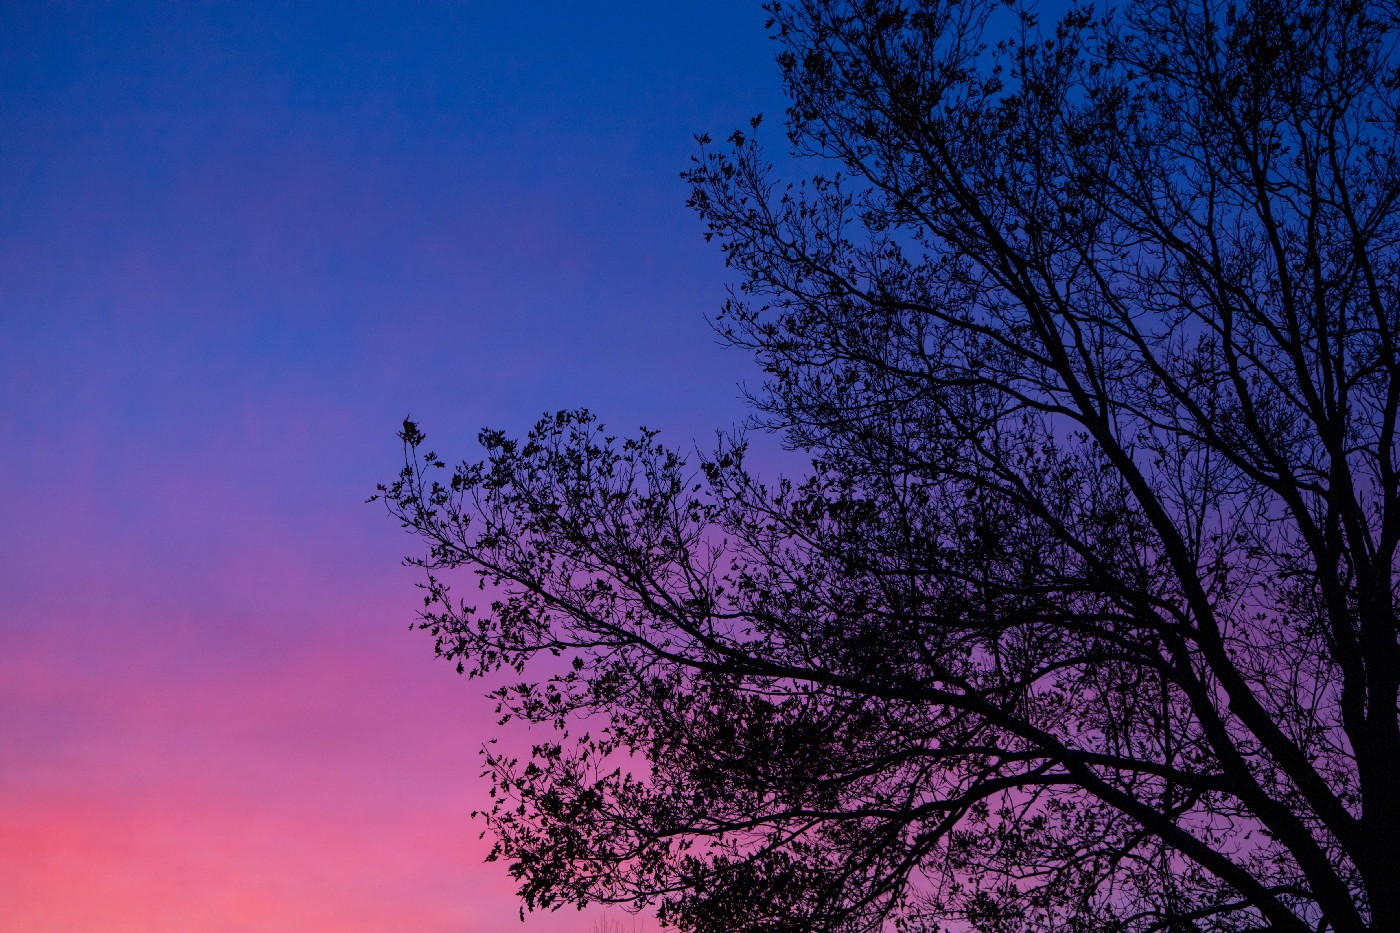 outline of a black tree against blue/purple/pink sunset sky